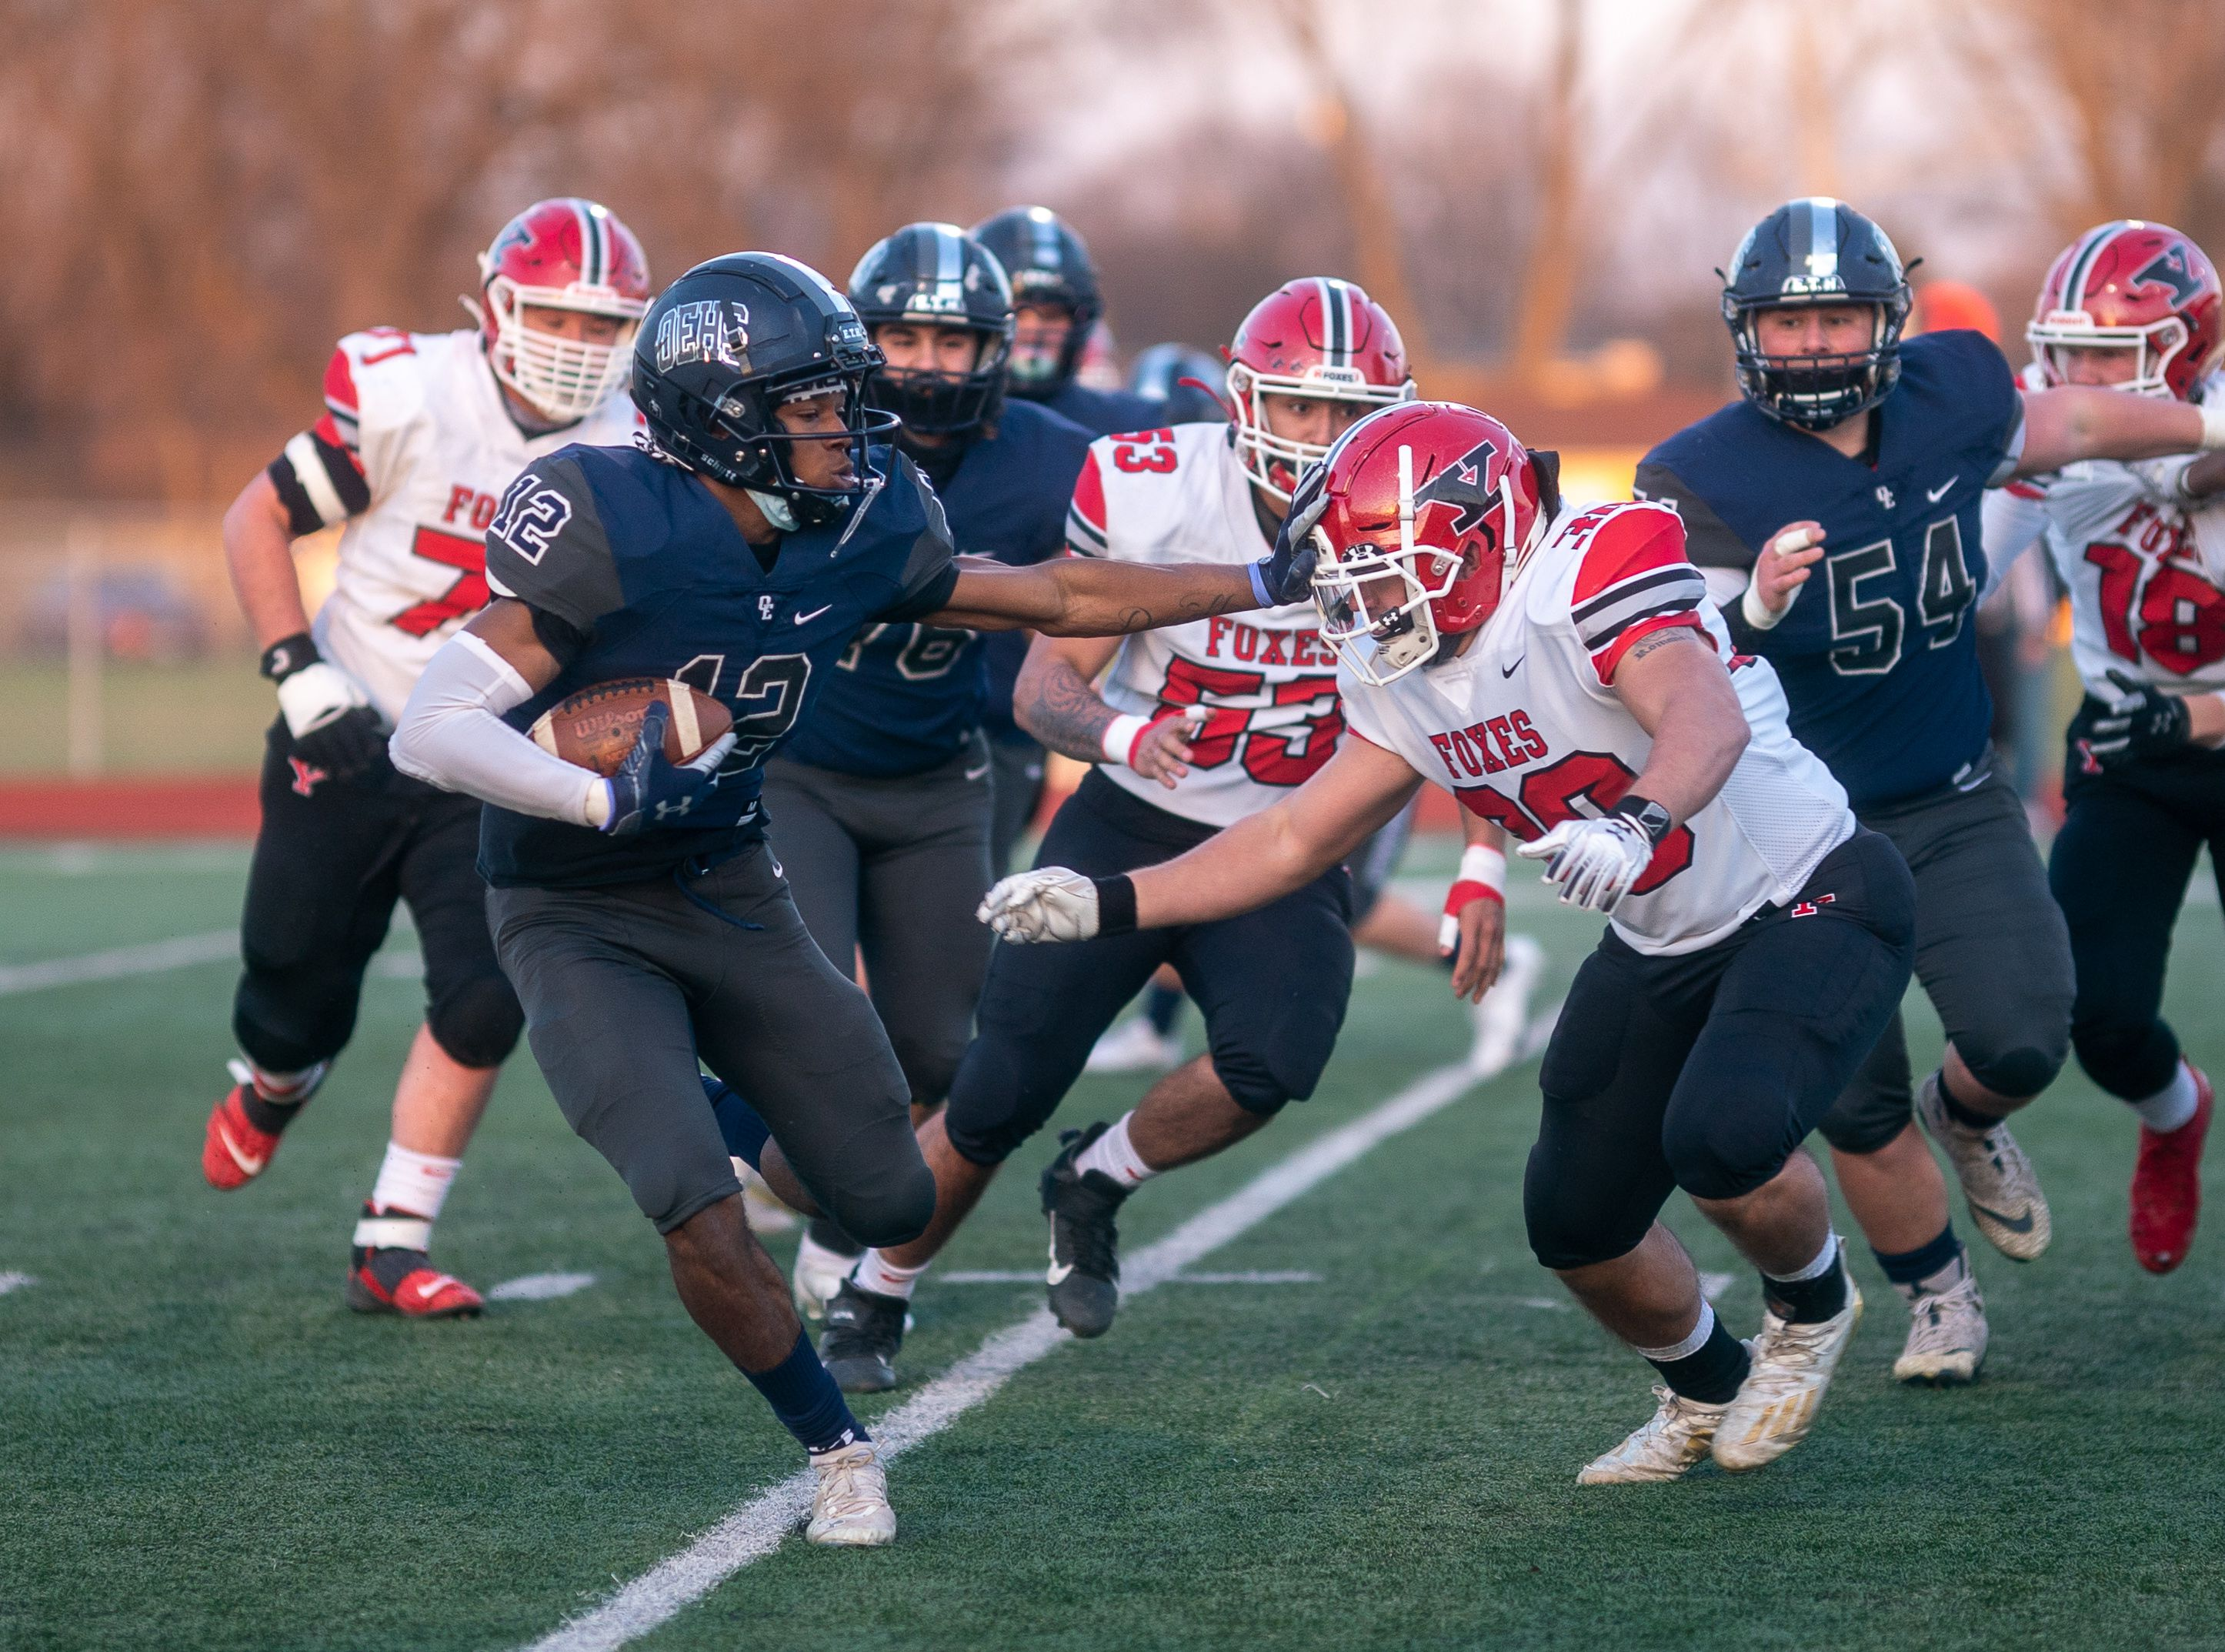 Oswego East's Darquel Sanders (12) carries the ball against Yorkville's Christian Aquino (30) during a football game in Aurora April 2